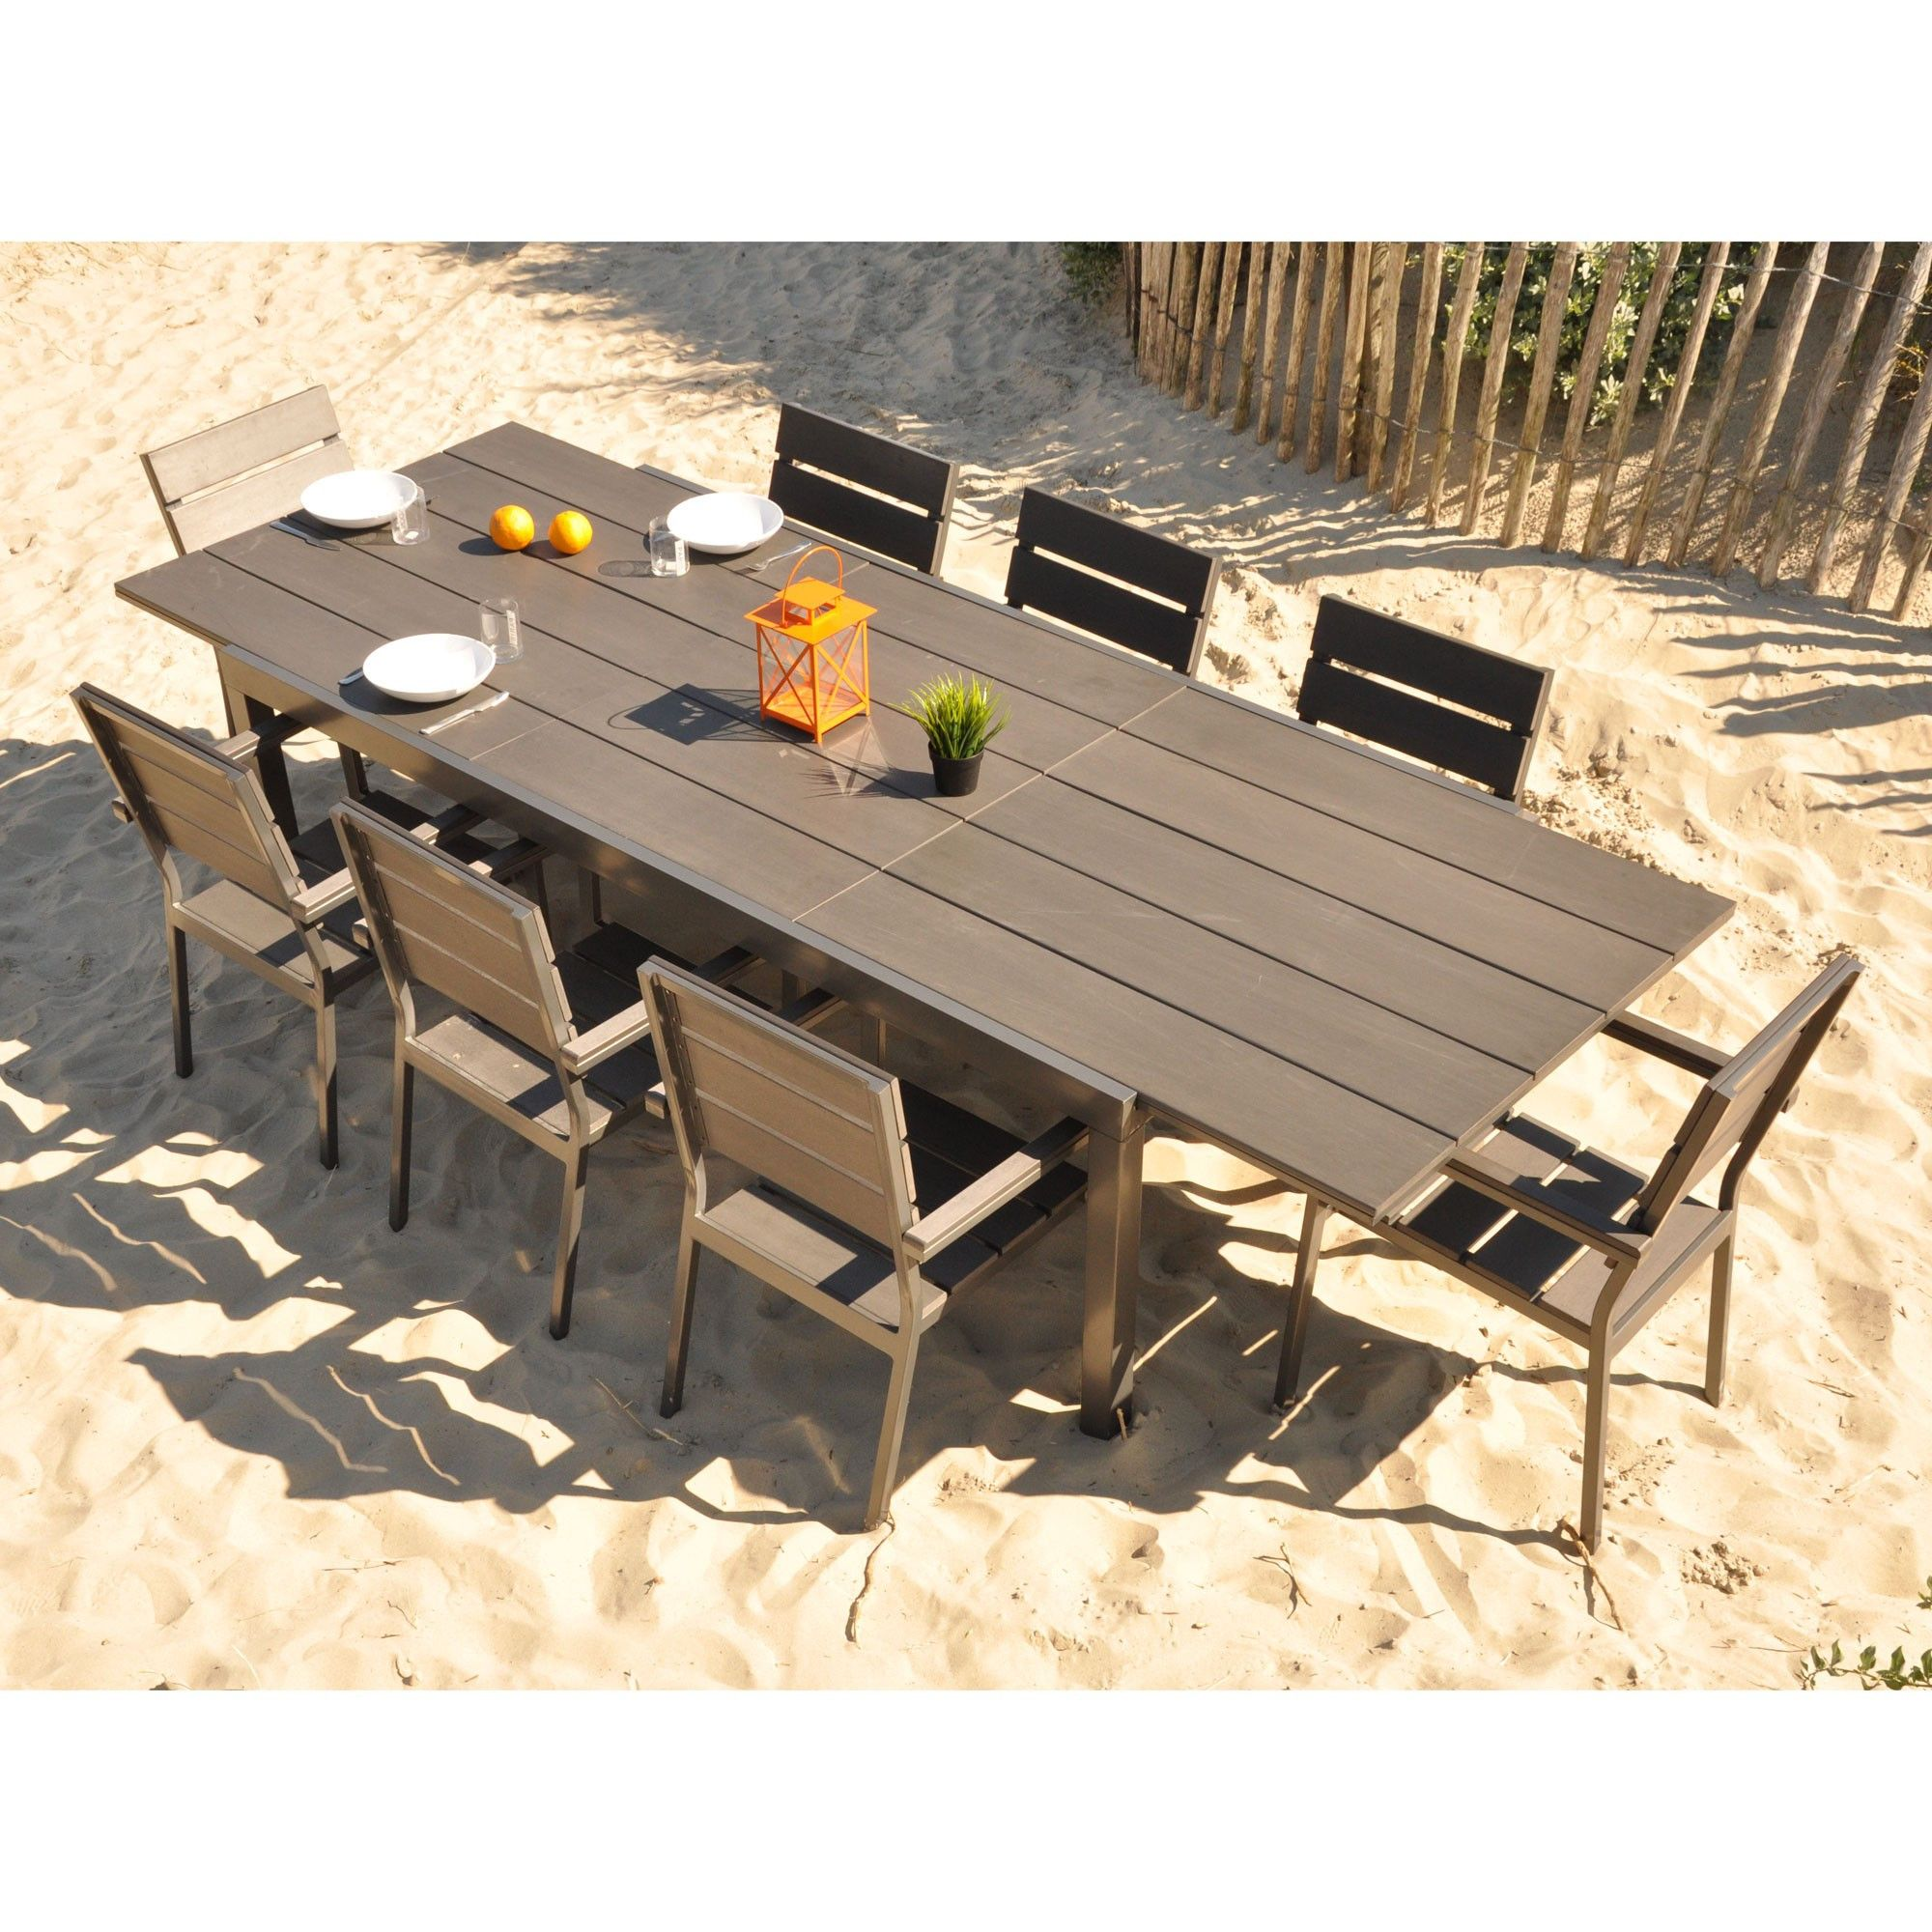 New Resine De Sol Exterieur Leroy Merlin Table De Jardin Salon De Jardin Table De Jardin Pliante